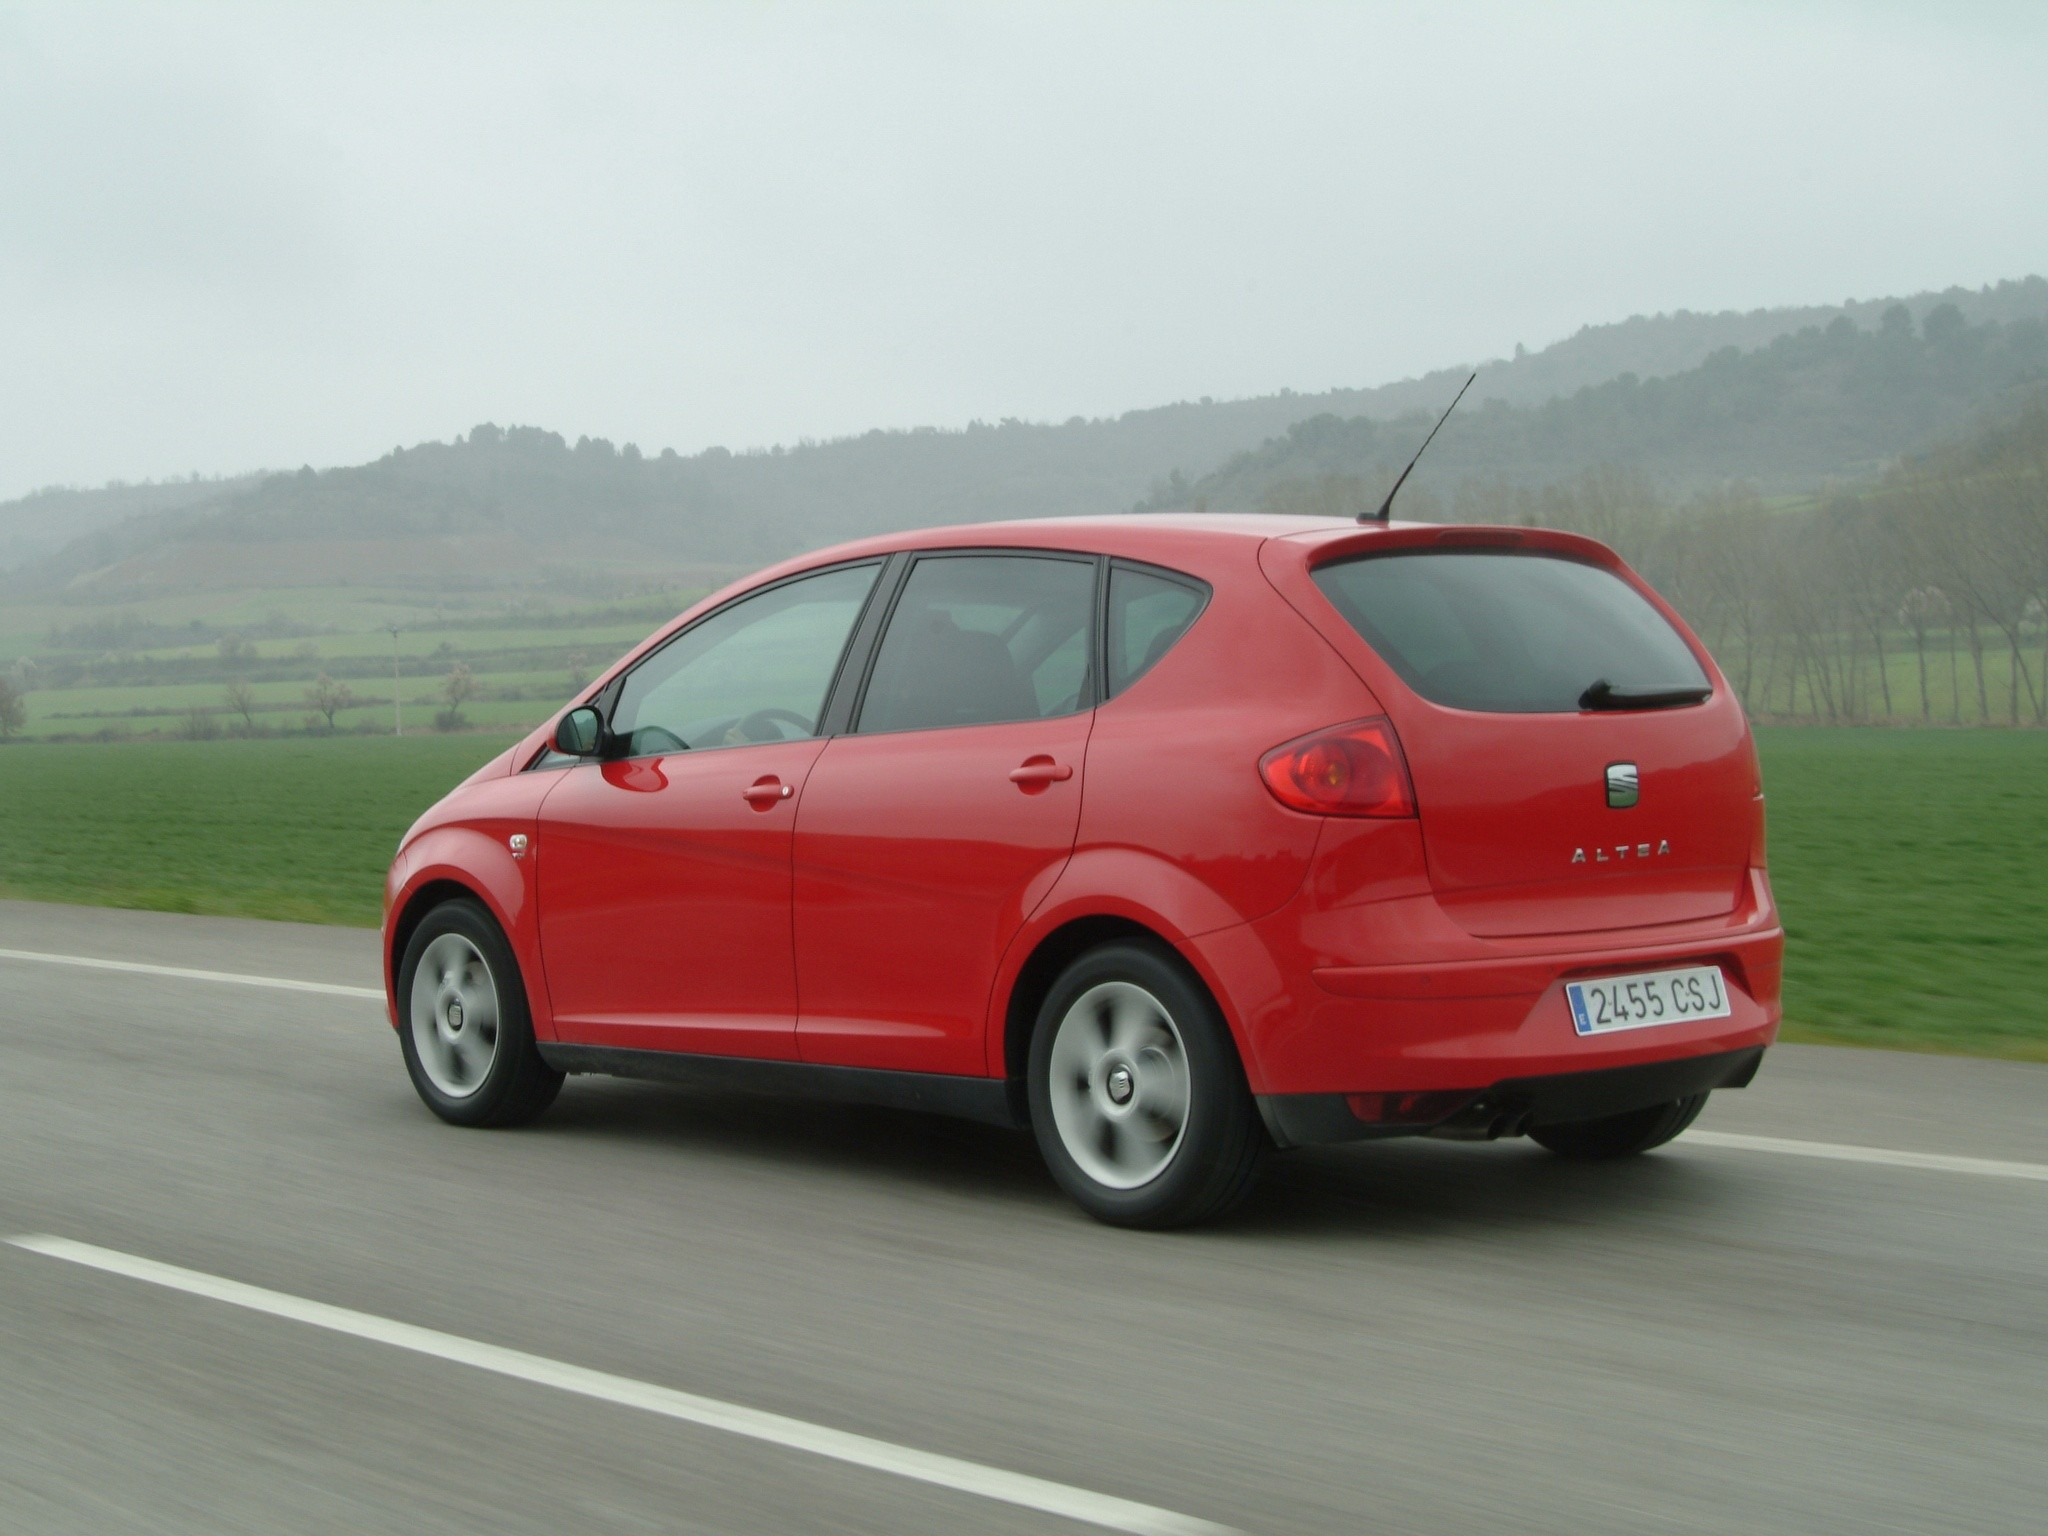 Seat altea photo - 7